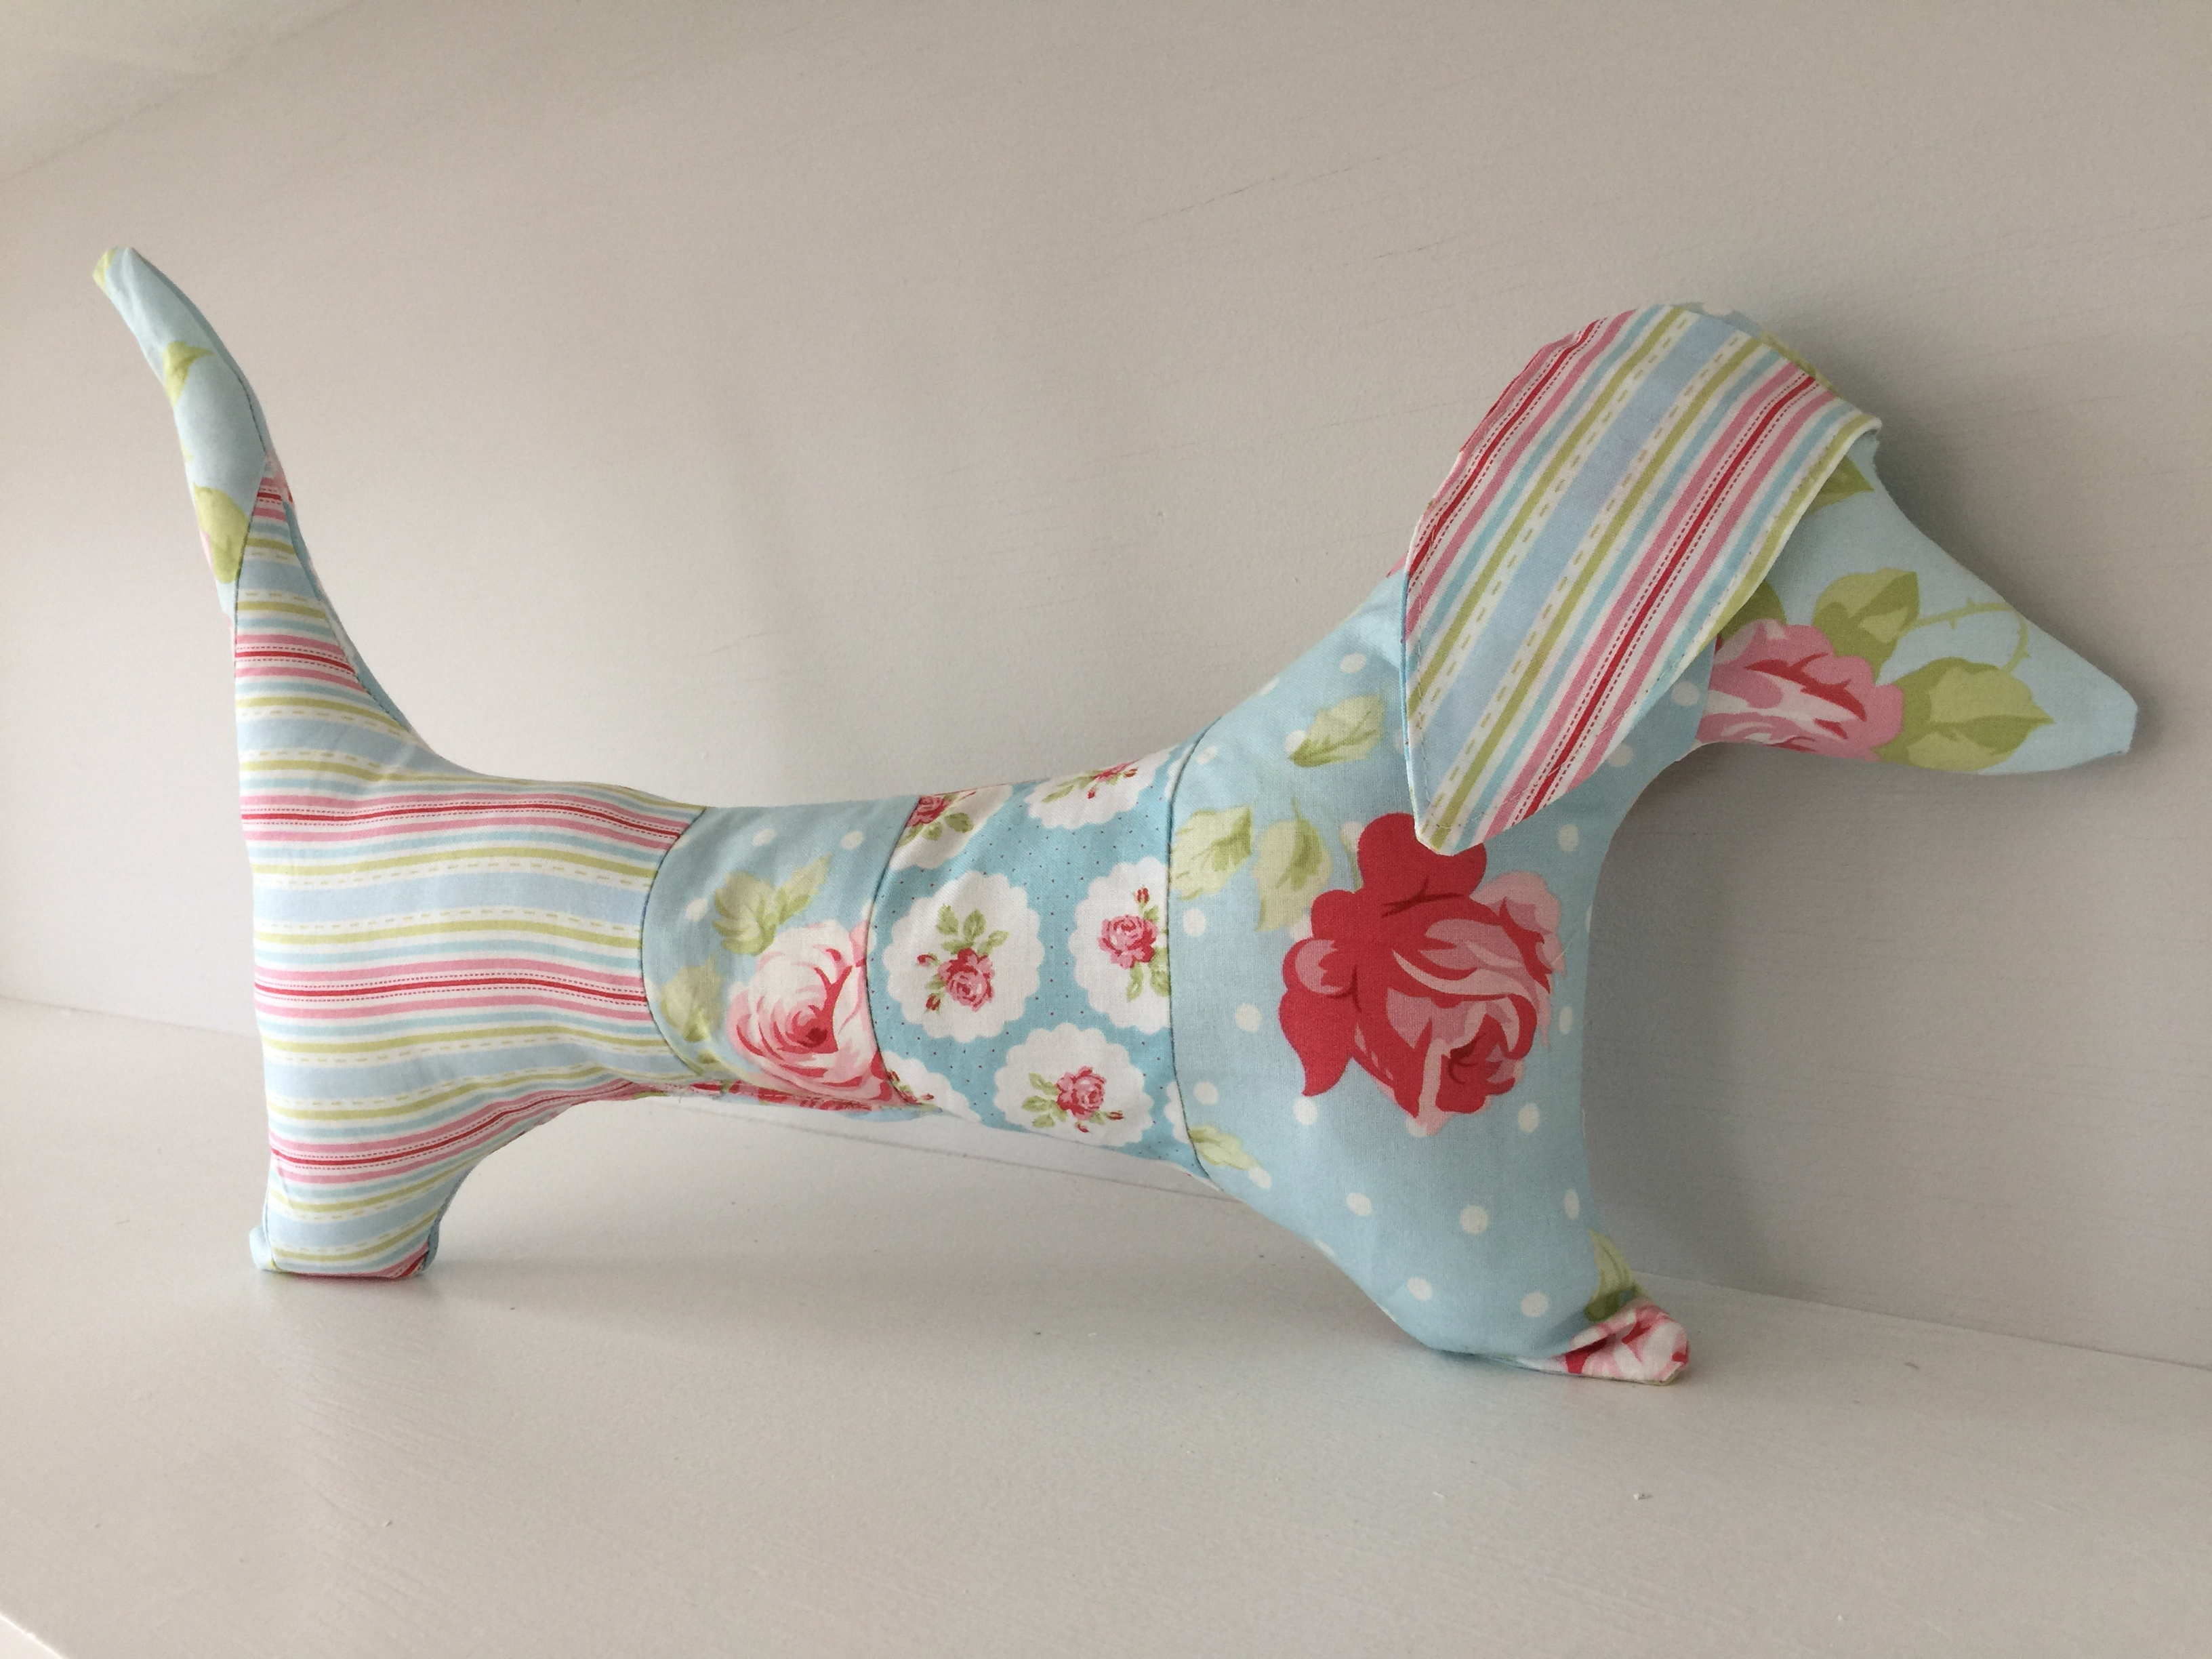 How To Sew A Stuffed Dachshund Dog With Free Pattern – Sewspire - Free Printable Dachshund Sewing Pattern